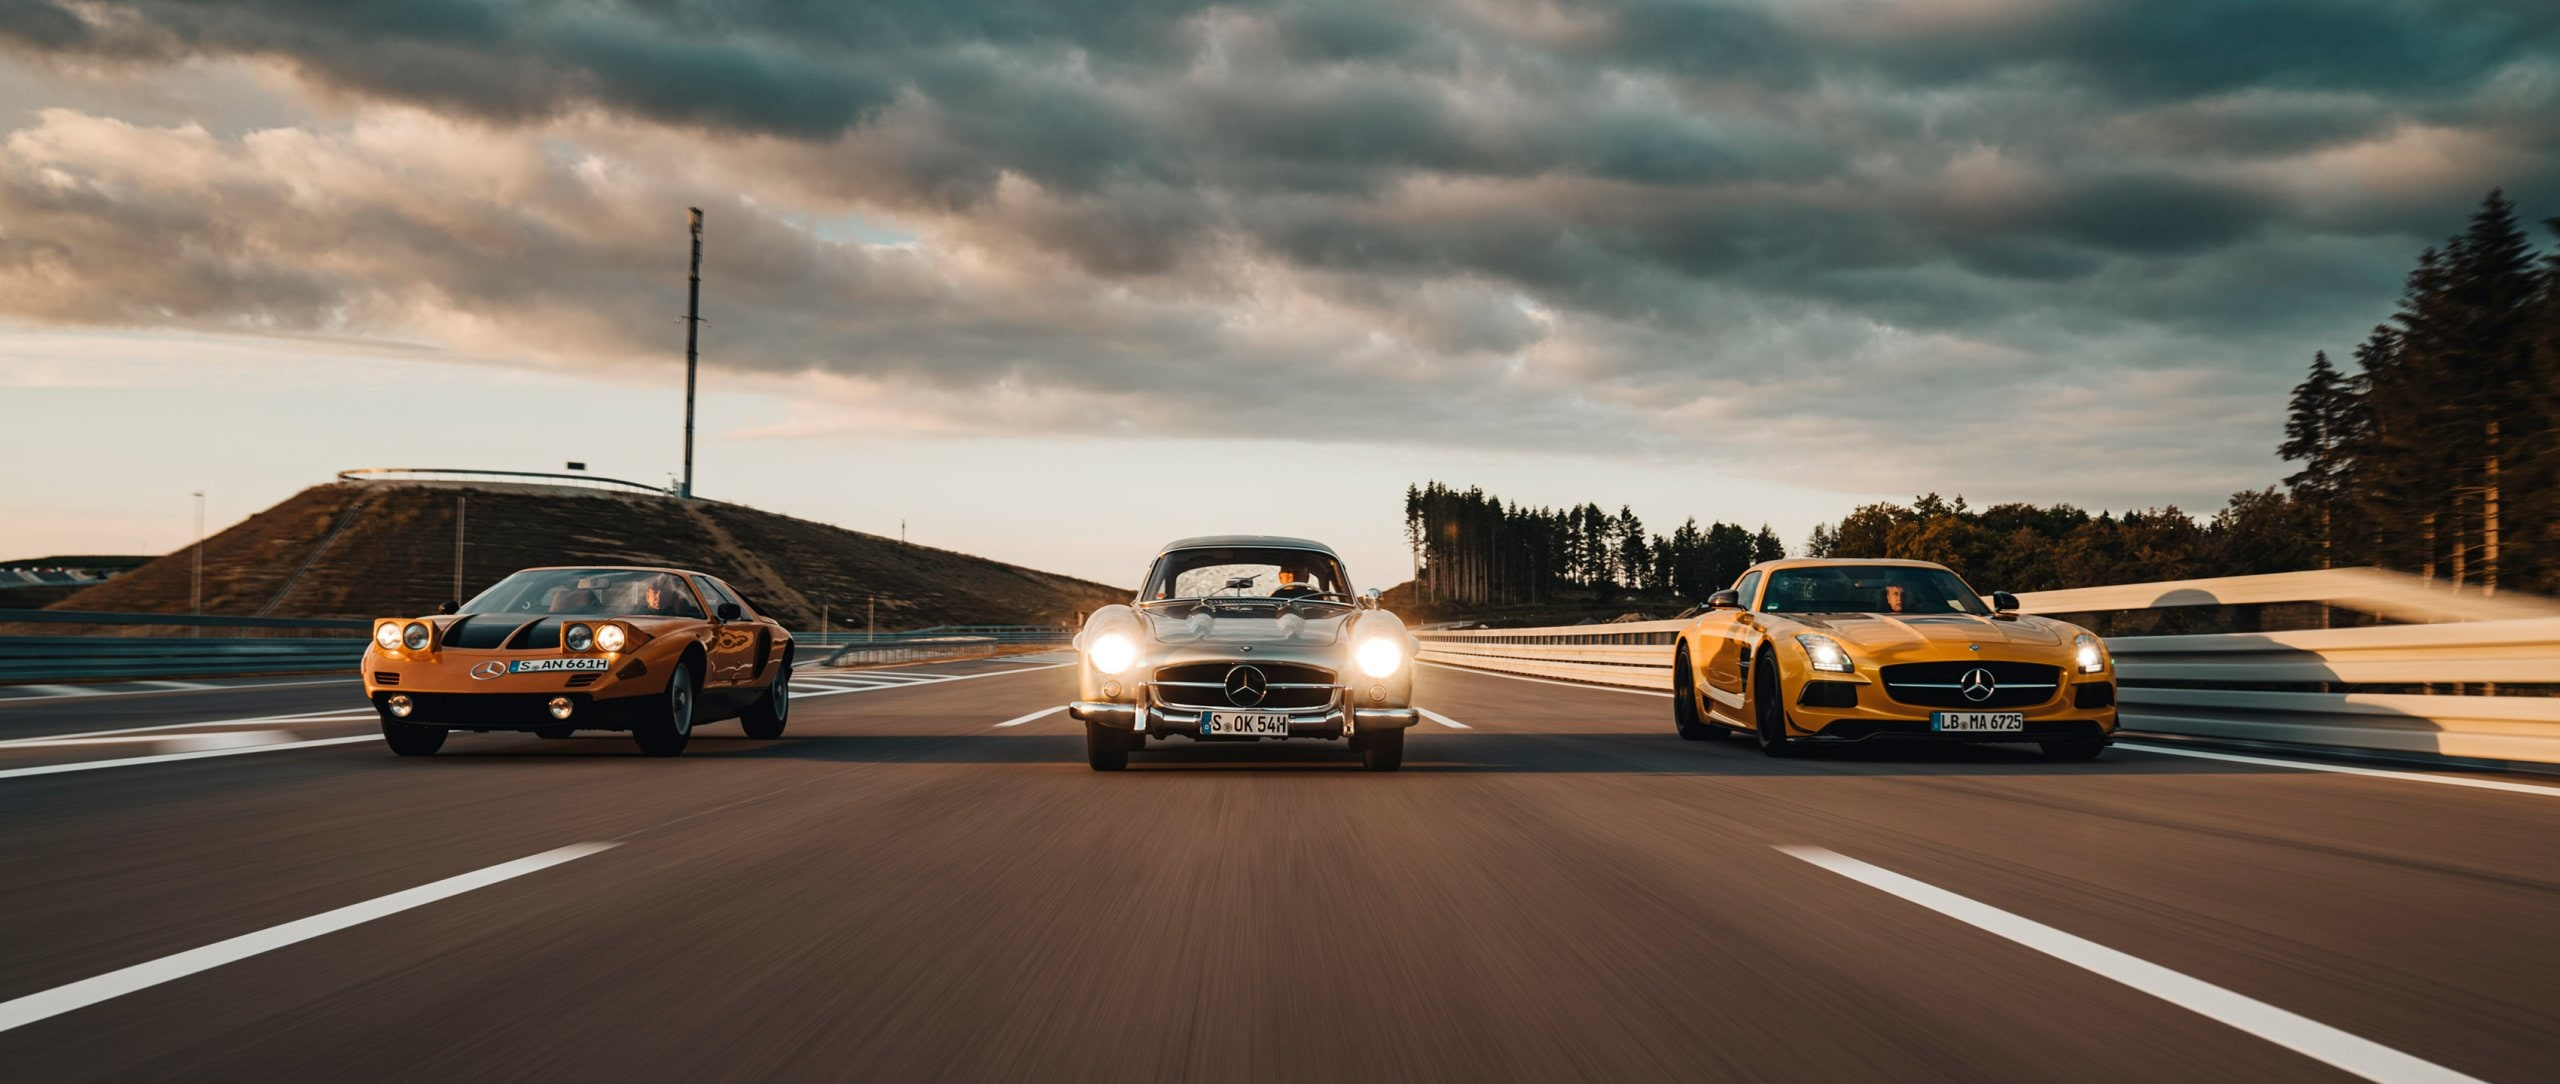 Three Mercedes-Benz dream cars on the race track.